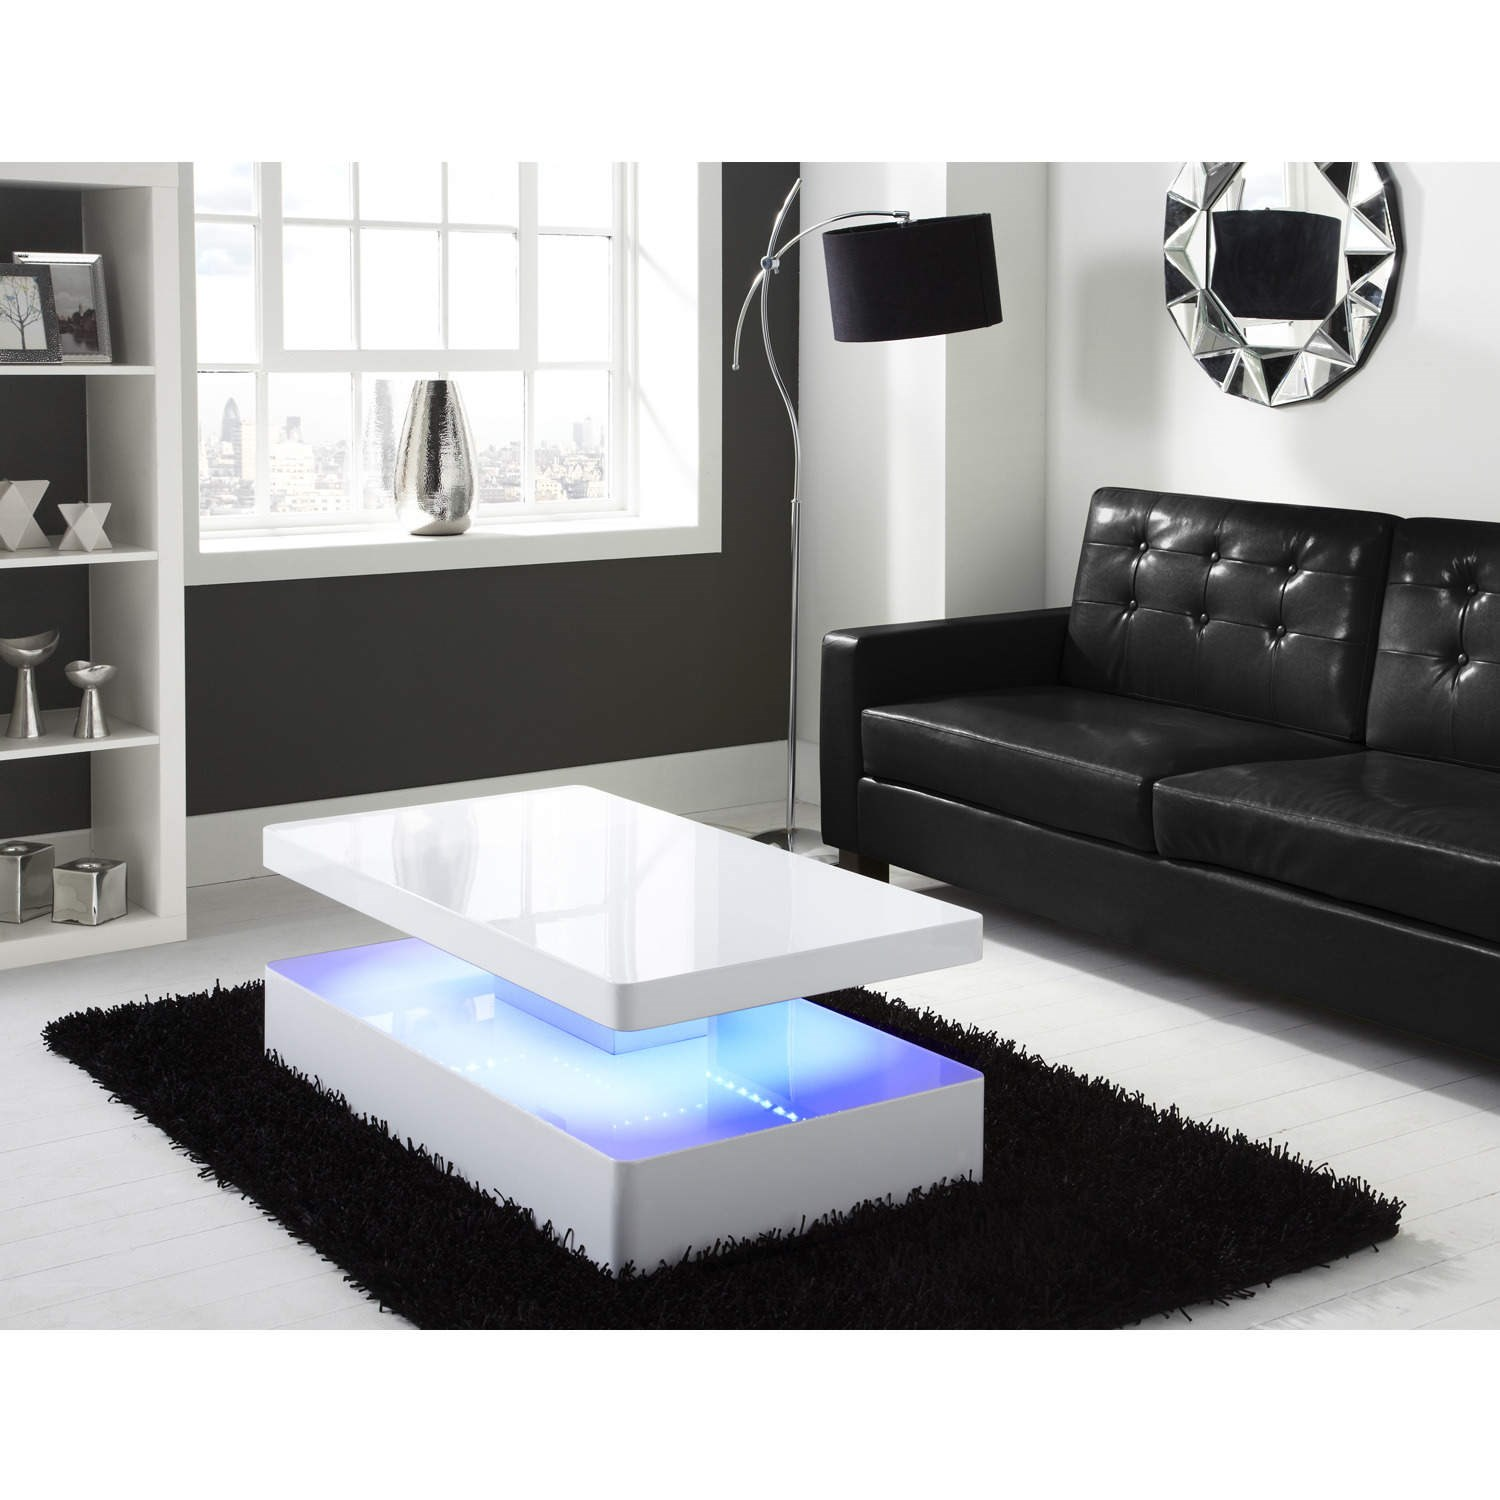 4 Steps To Integrating An Illuminated Coffee Table Into Your Interior